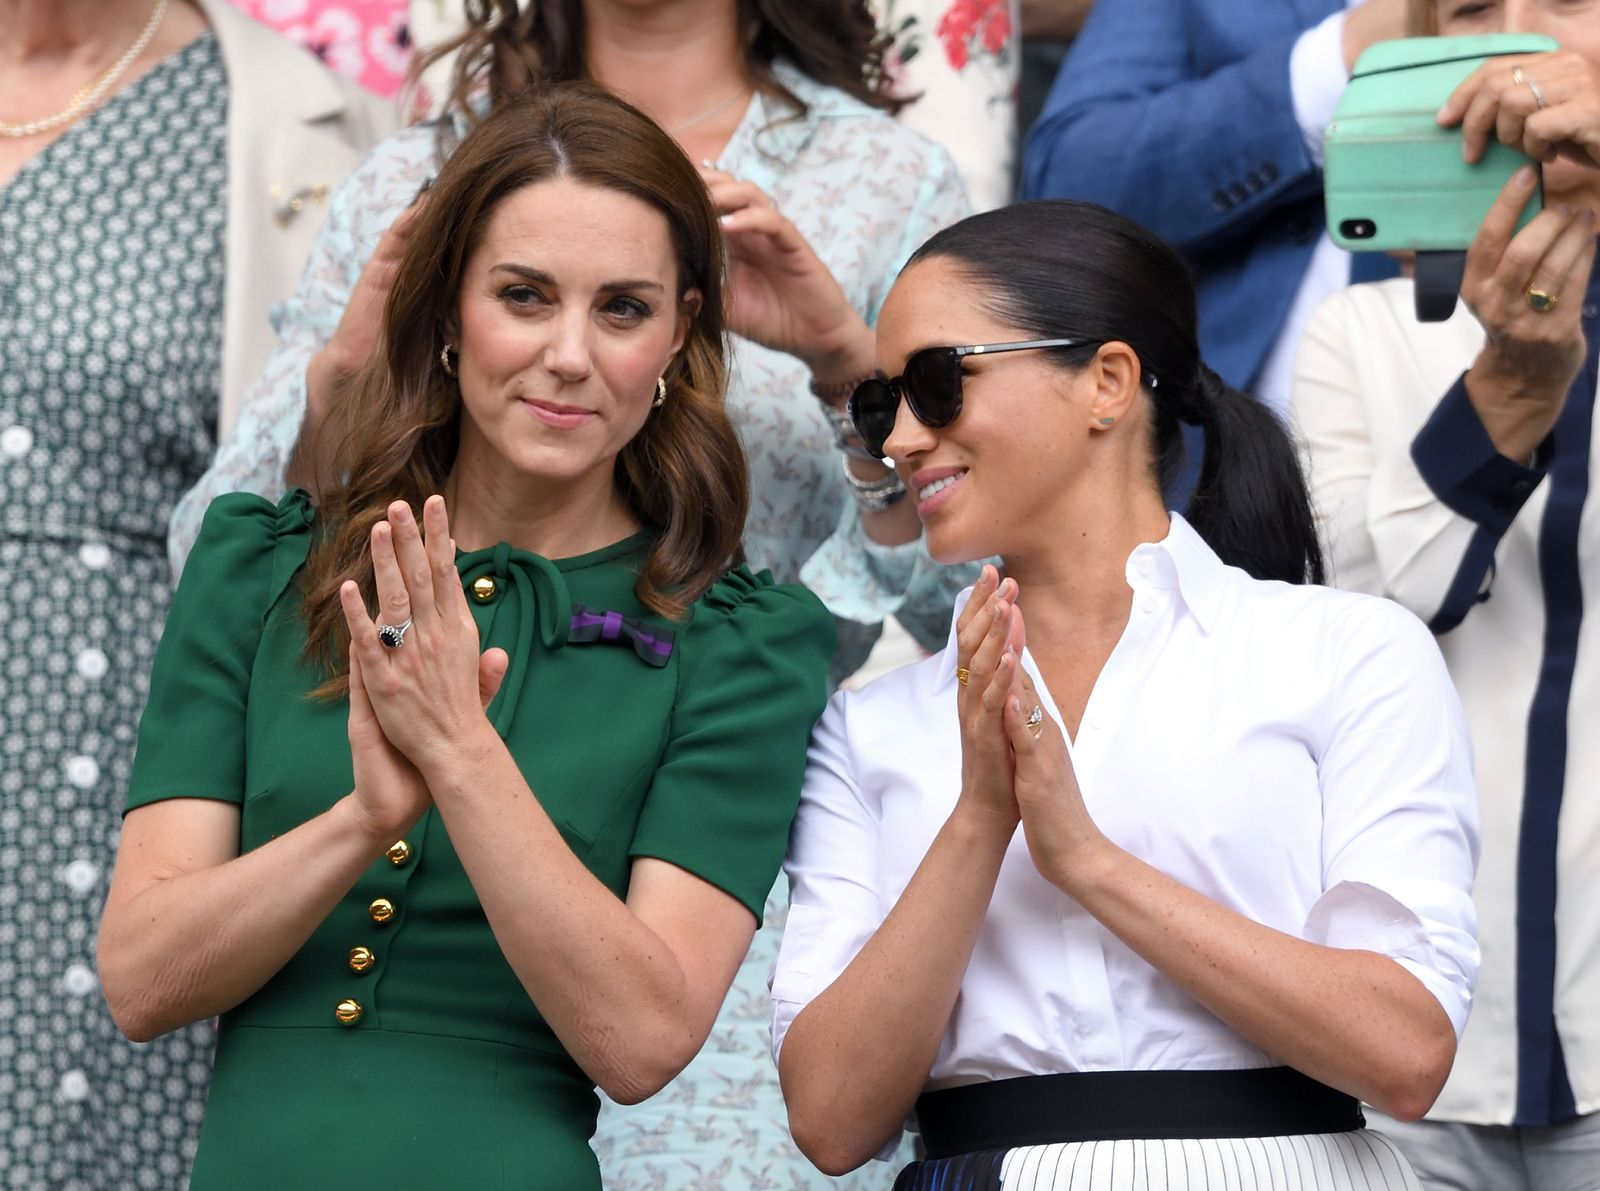 Dutchesses Kate Middleton and Meghan Markle/Photo:Getty Images